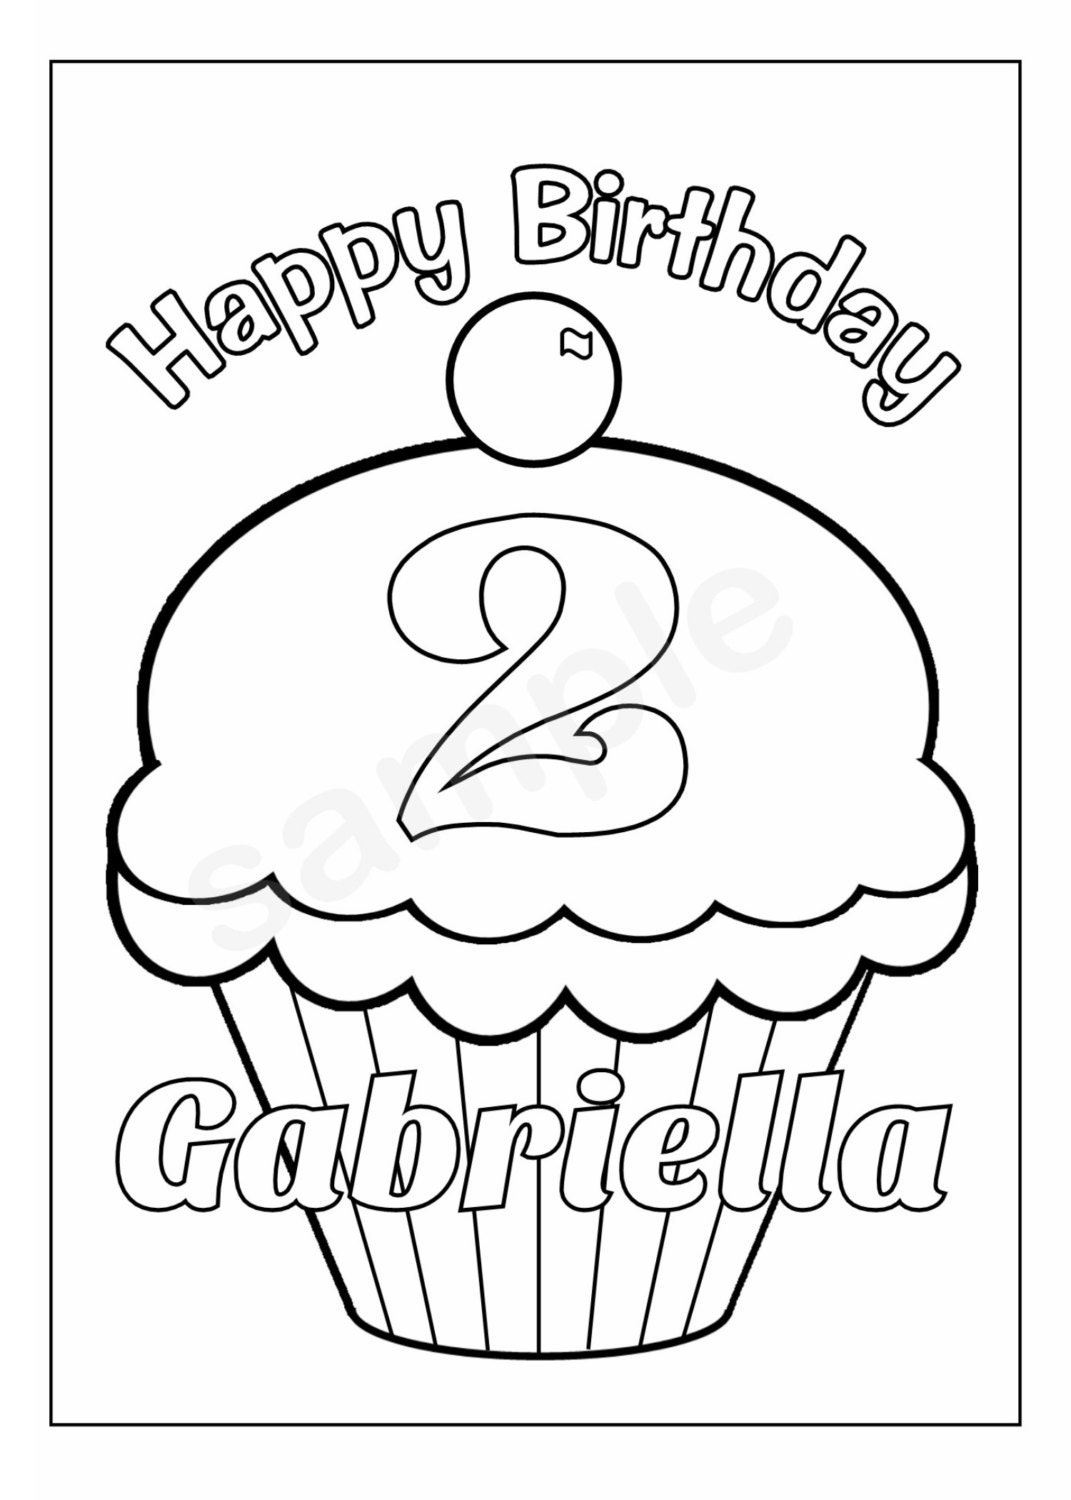 personalized coloring pages - photo#19